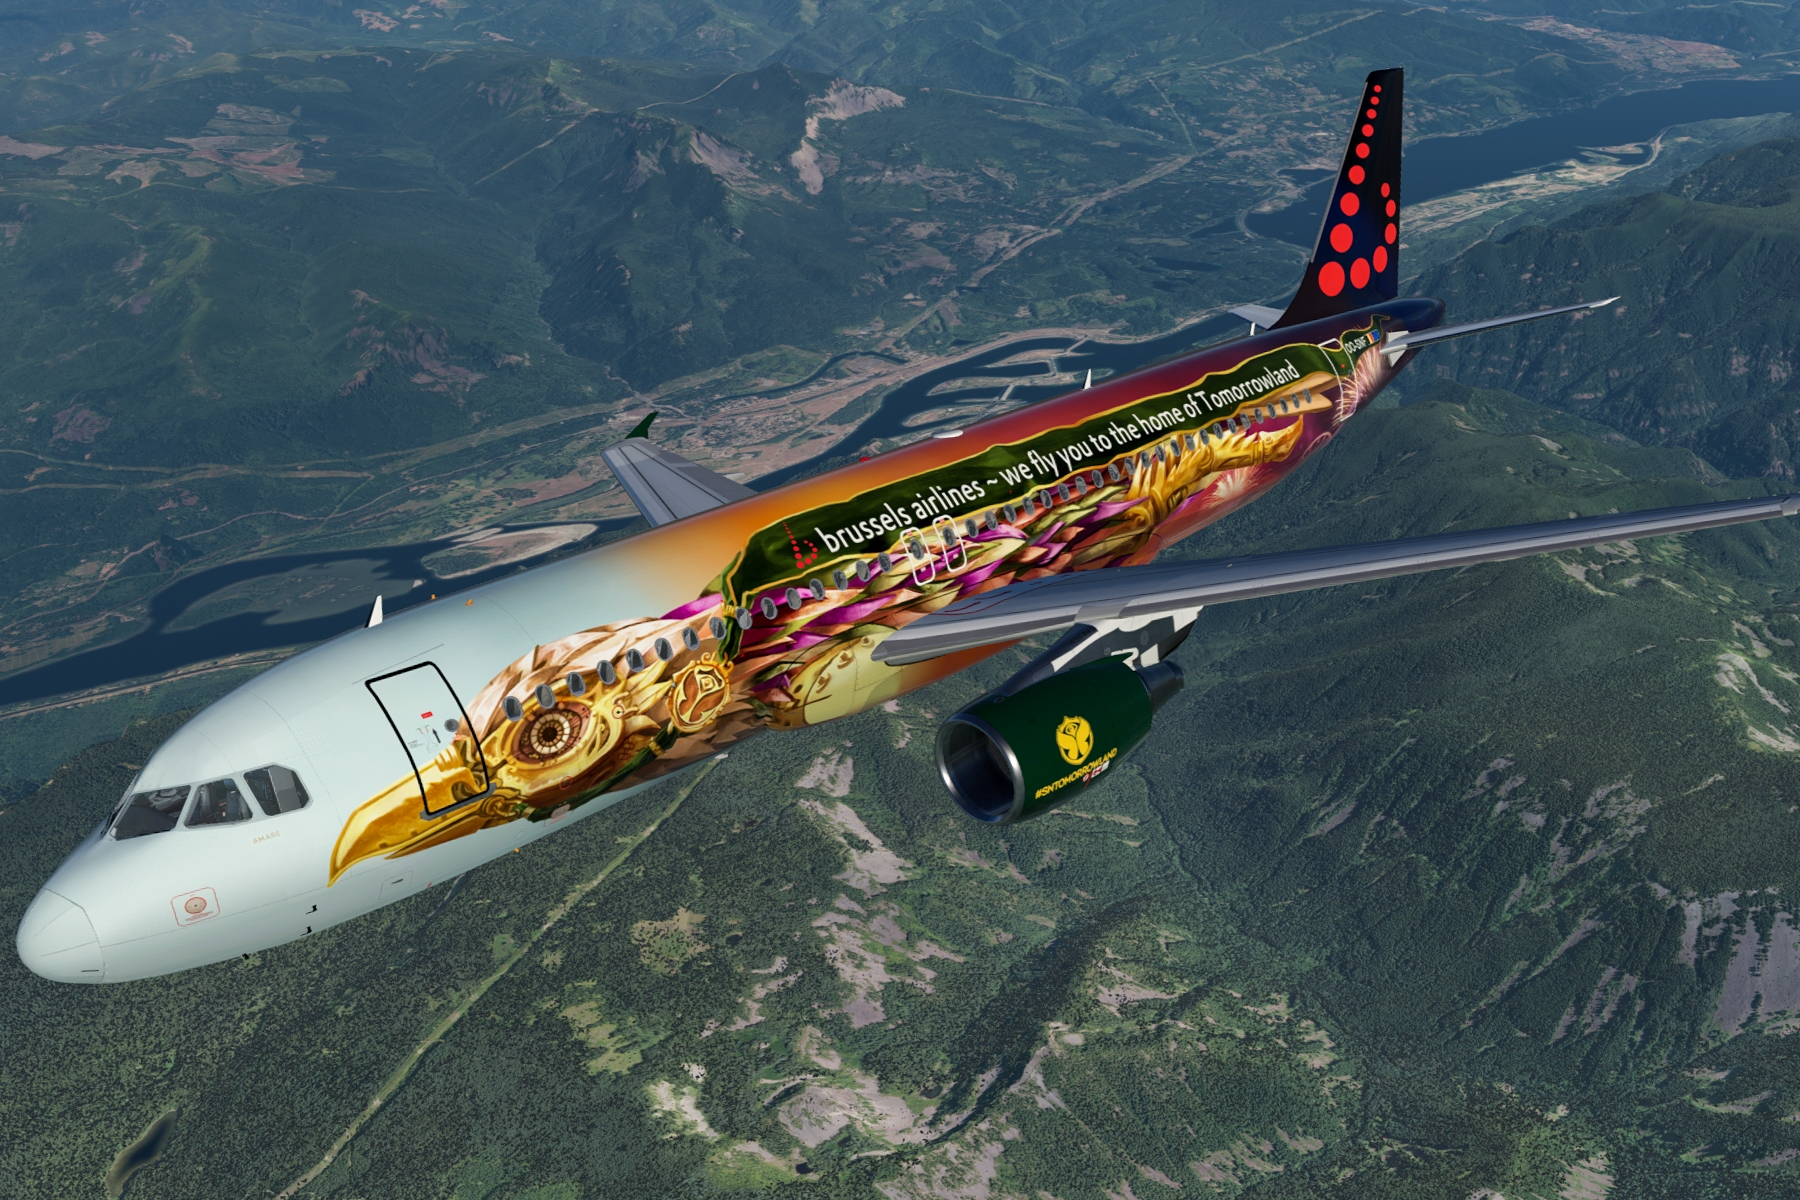 - Brussels airlines(tomorrowland)